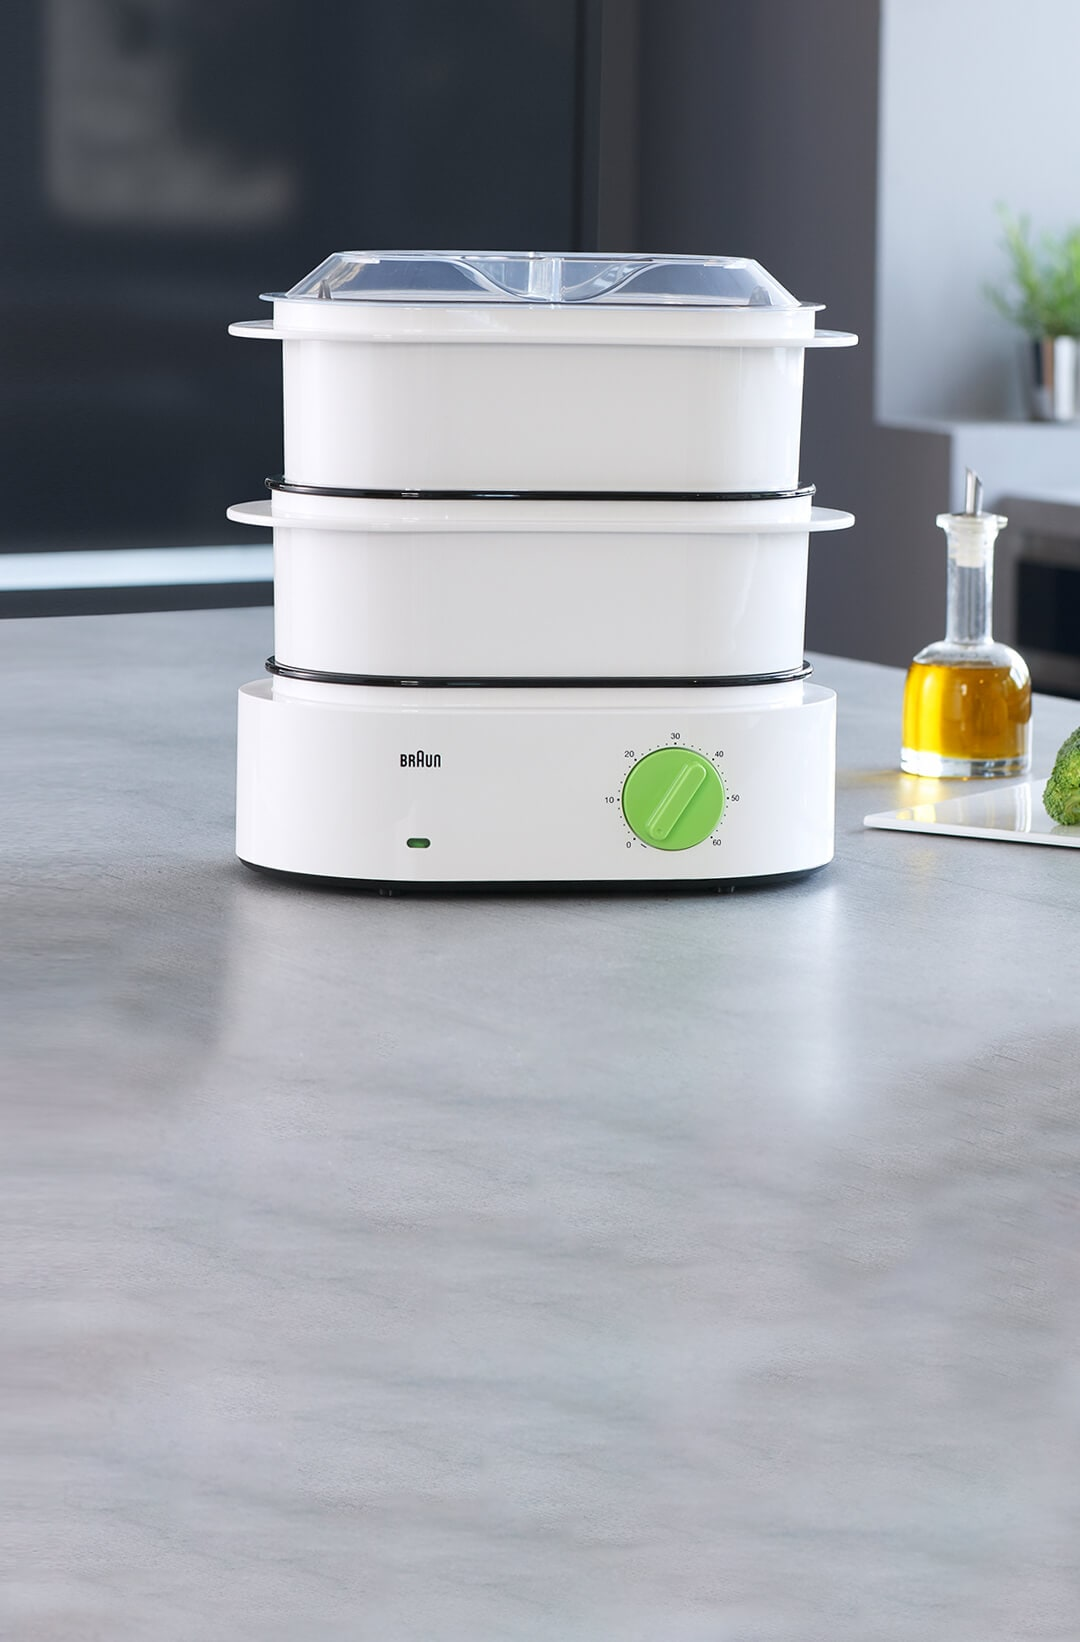 Braun TributeCollection Food steamer